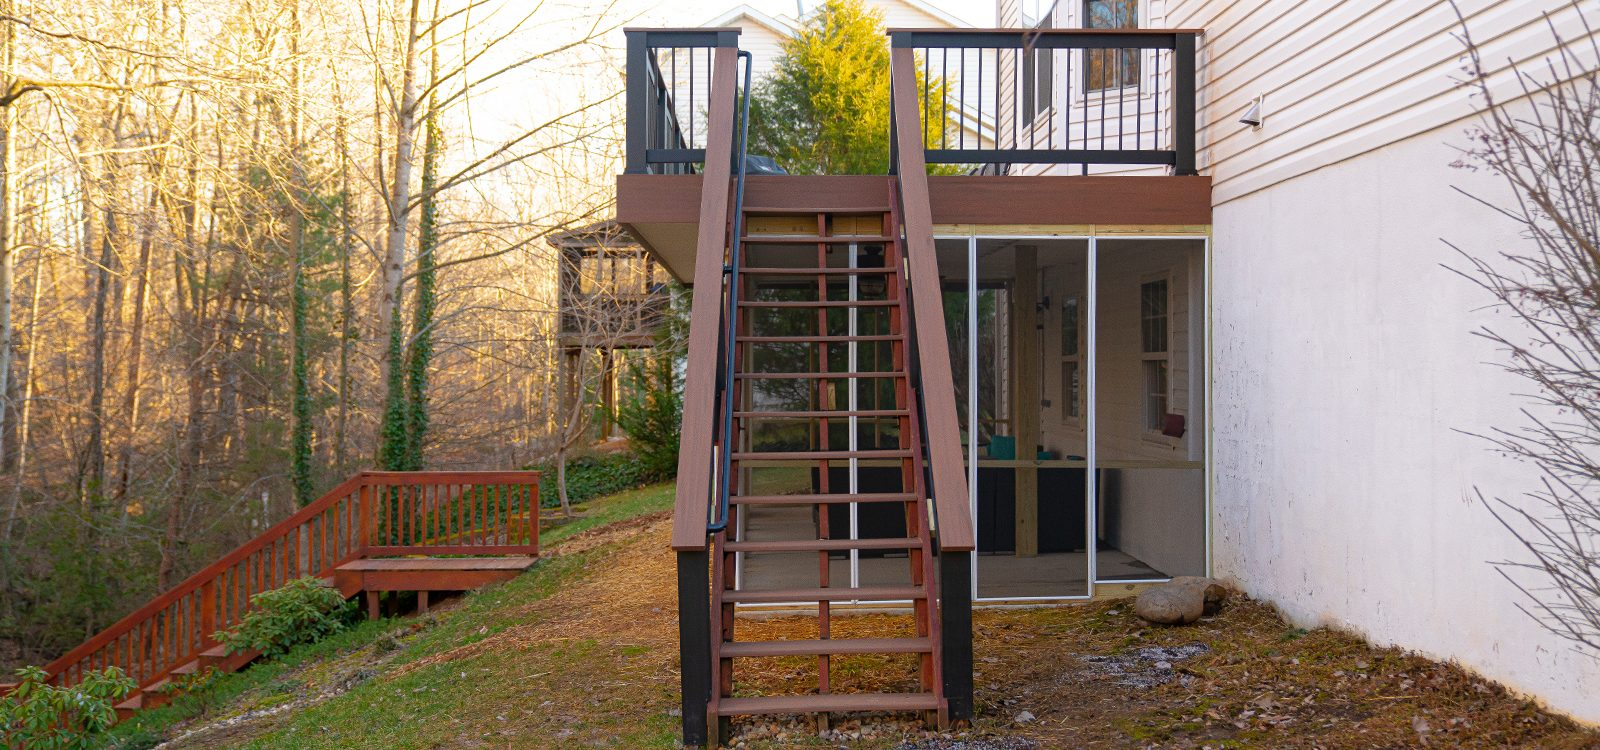 new-deck-construction-in-spotsylvania-county-3.jpg